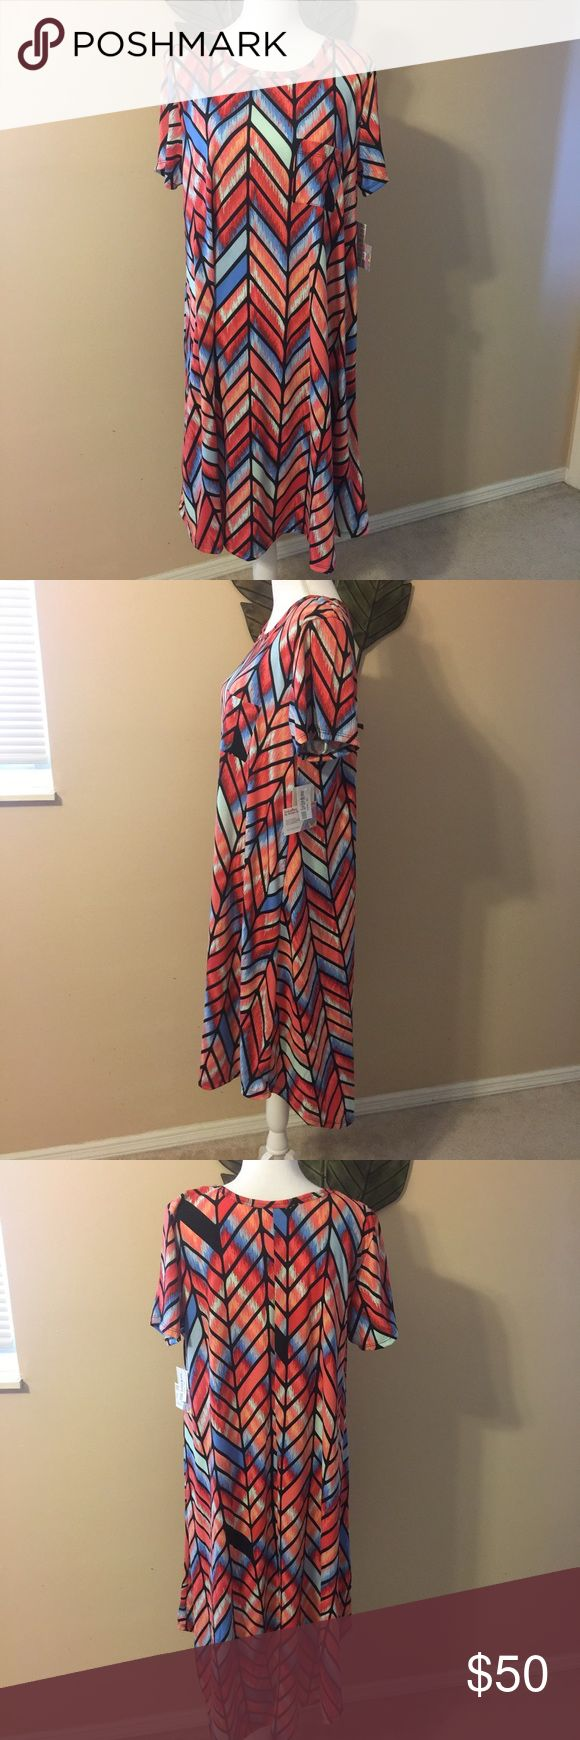 Lularoe Carly Dress NWT! Amazing colors!  Carly high-low style dress. Last pic shows how versatile the dress is! Made in Mexico. 96% polyester and 4% spandex. Please be familiar with LLR sizing before purchasing. This dress runs approx 1-2 sizes bigger than a normal XL.  My price is already discounted to help with shipping costs 🙂. LuLaRoe Dresses High Low